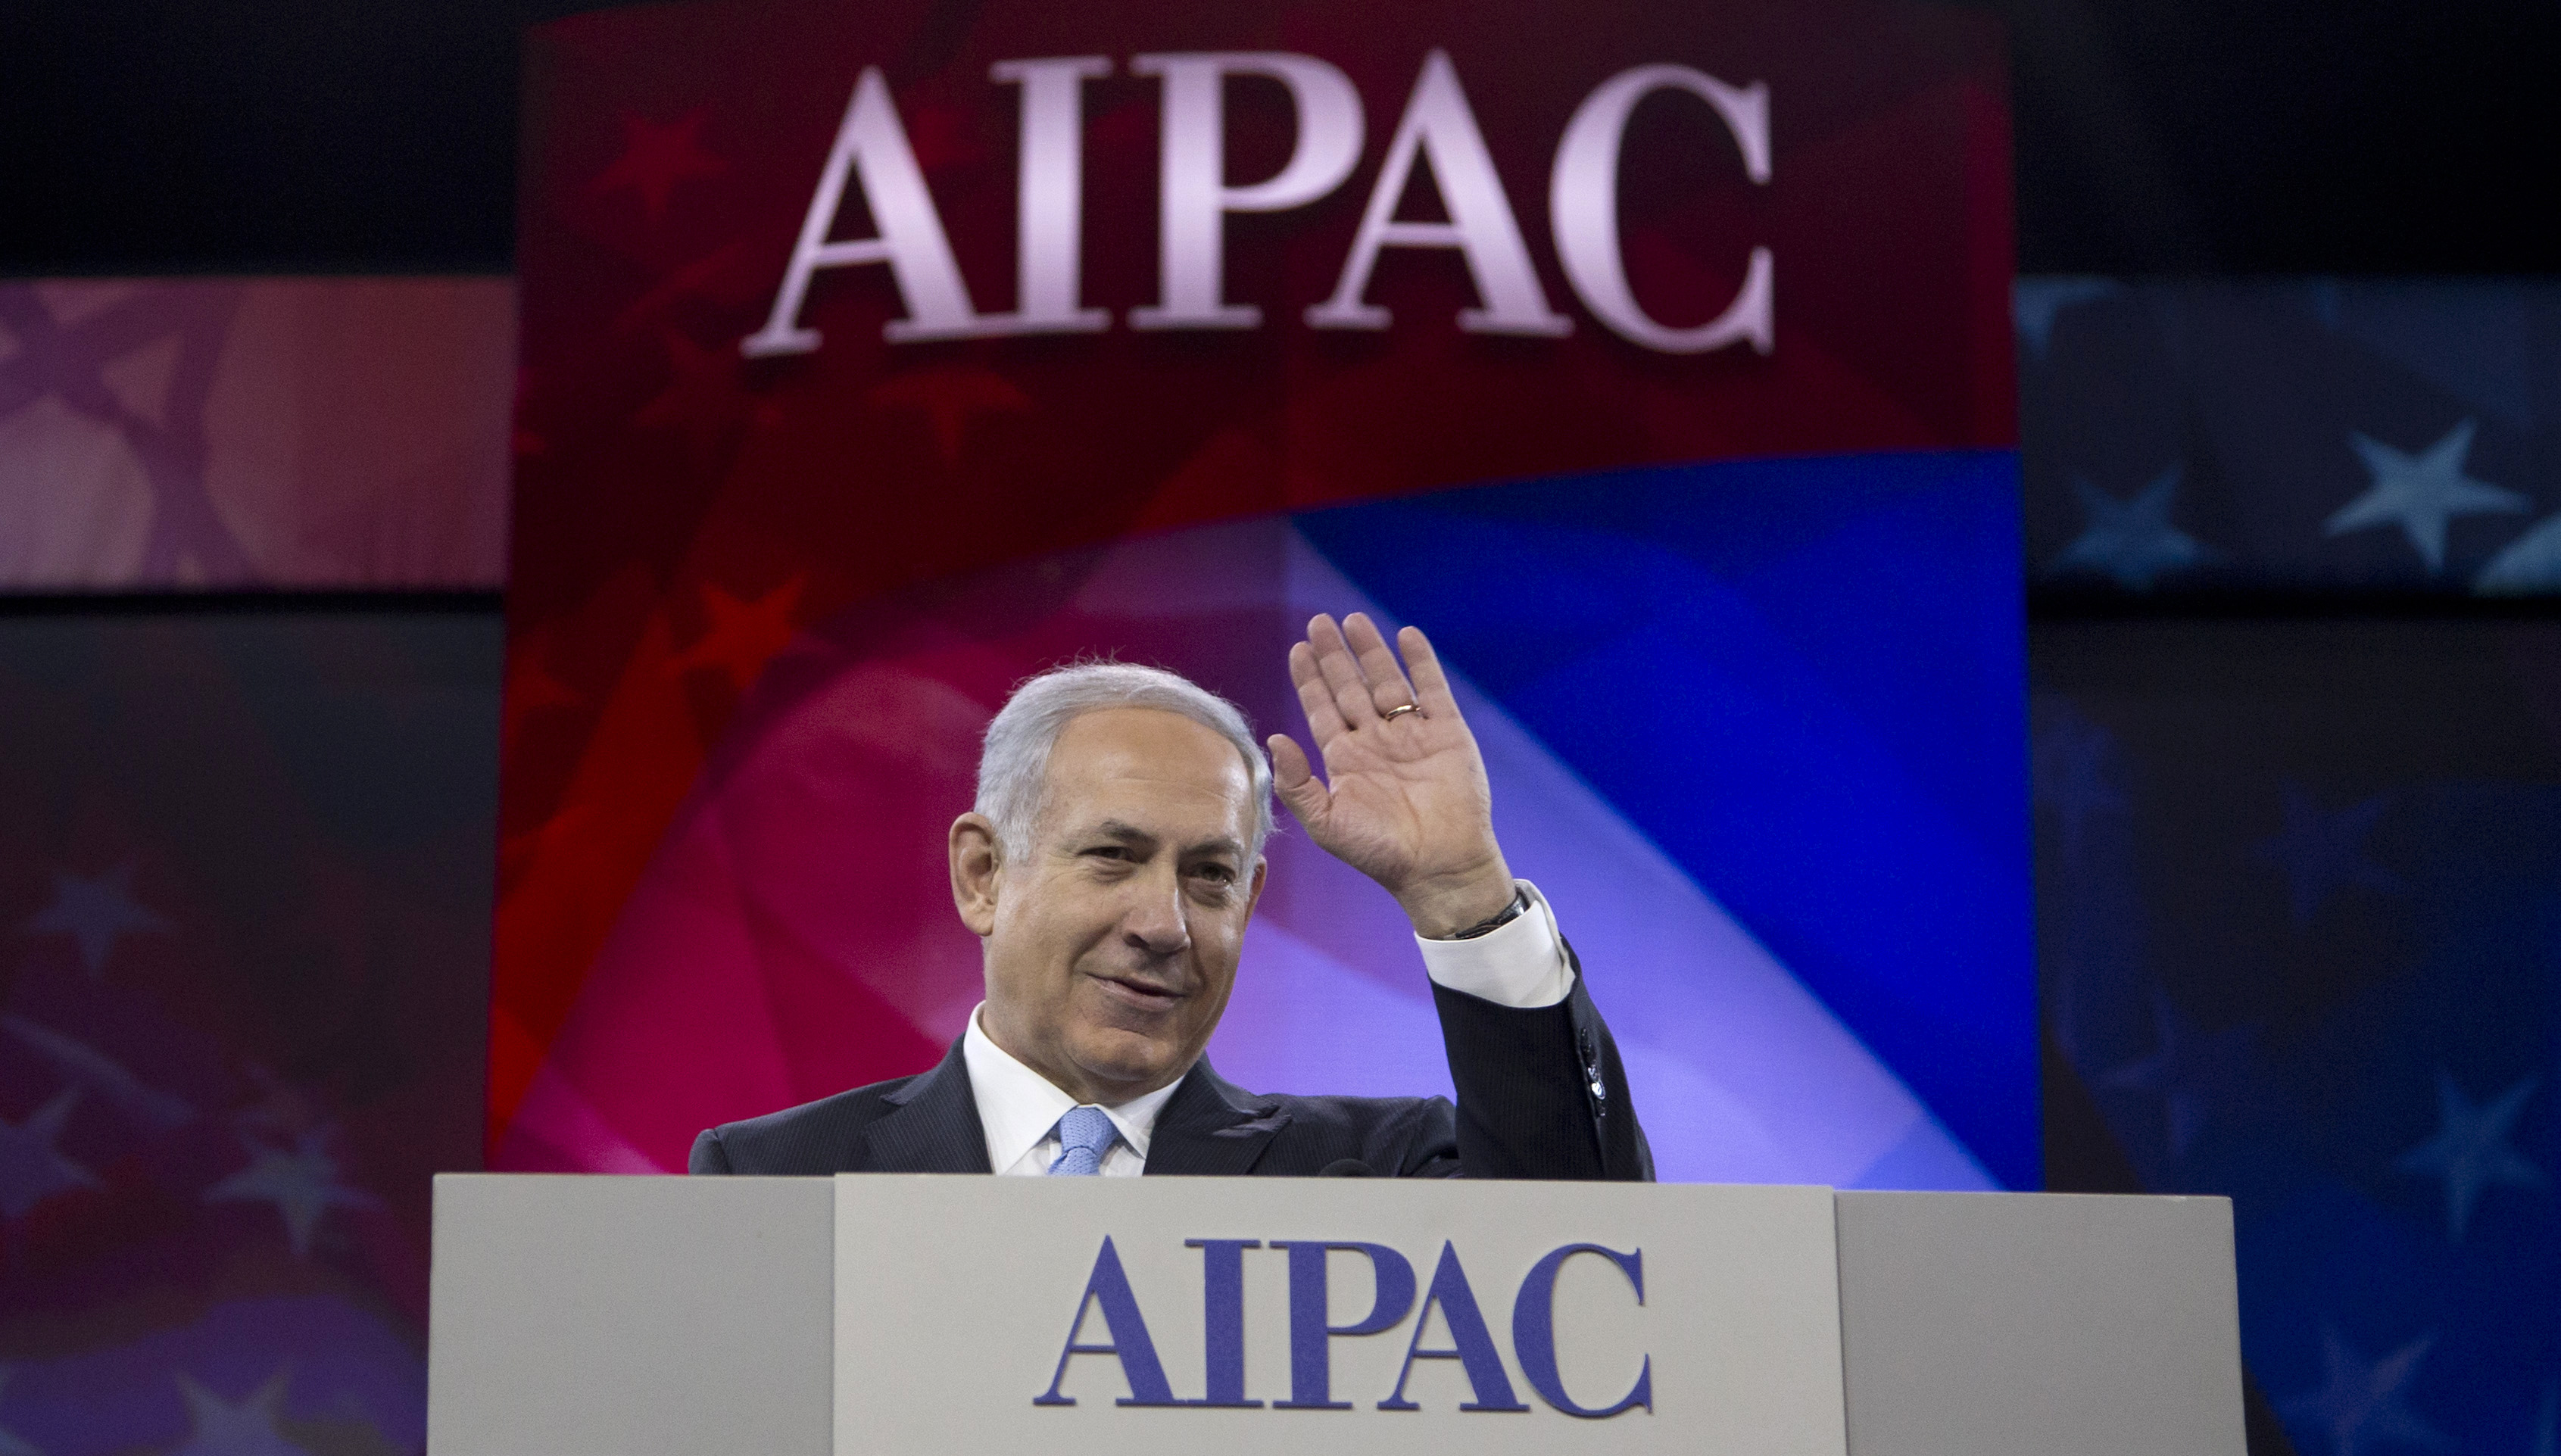 Israeli Prime Minister Benjamin Netanyahu waves to the cheering audience as he arrives to speak to the AIPAC meeting at the Washington Convention Center on March 4, 2014, in Washington.